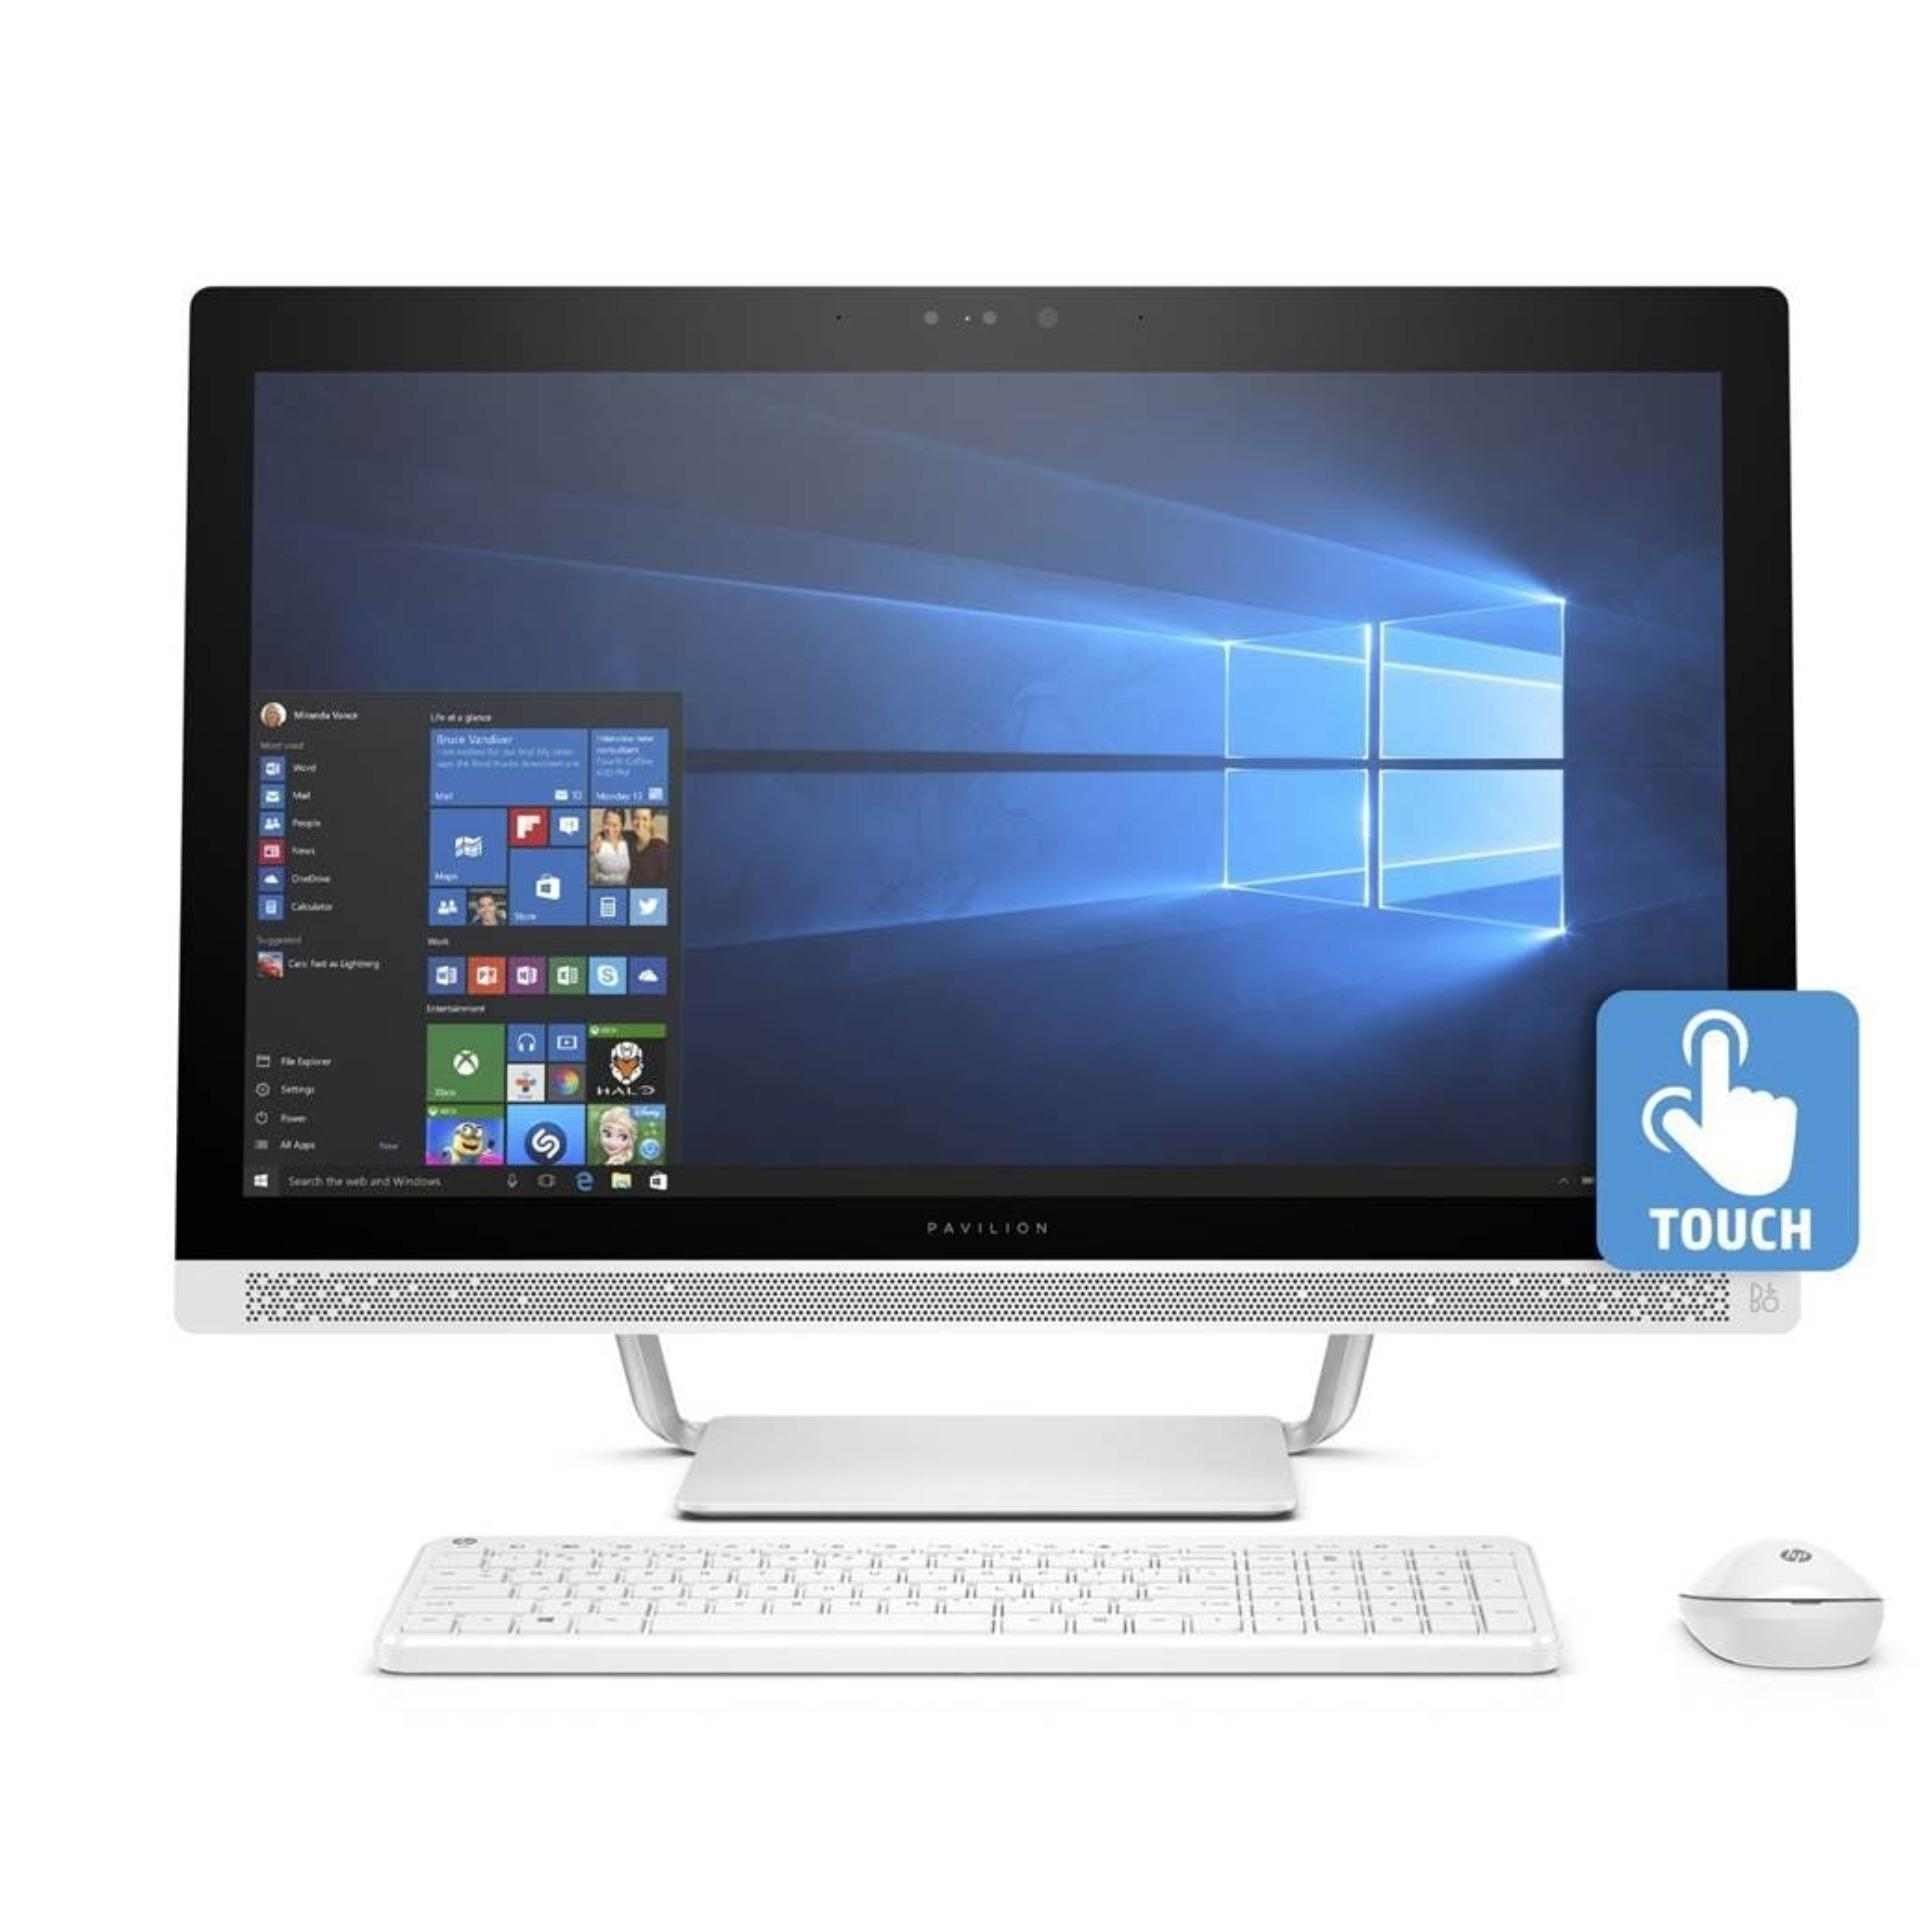 HP 27-a276d Pavilion Touch AIO i7-7700T Processor Windows 10 16GB Ram/ 2TB HDD Nvidia GeForce 930MX 4GB GDDR5 27.0 FHD WLED 1920×1080 Wireless Keyboard and Mouse